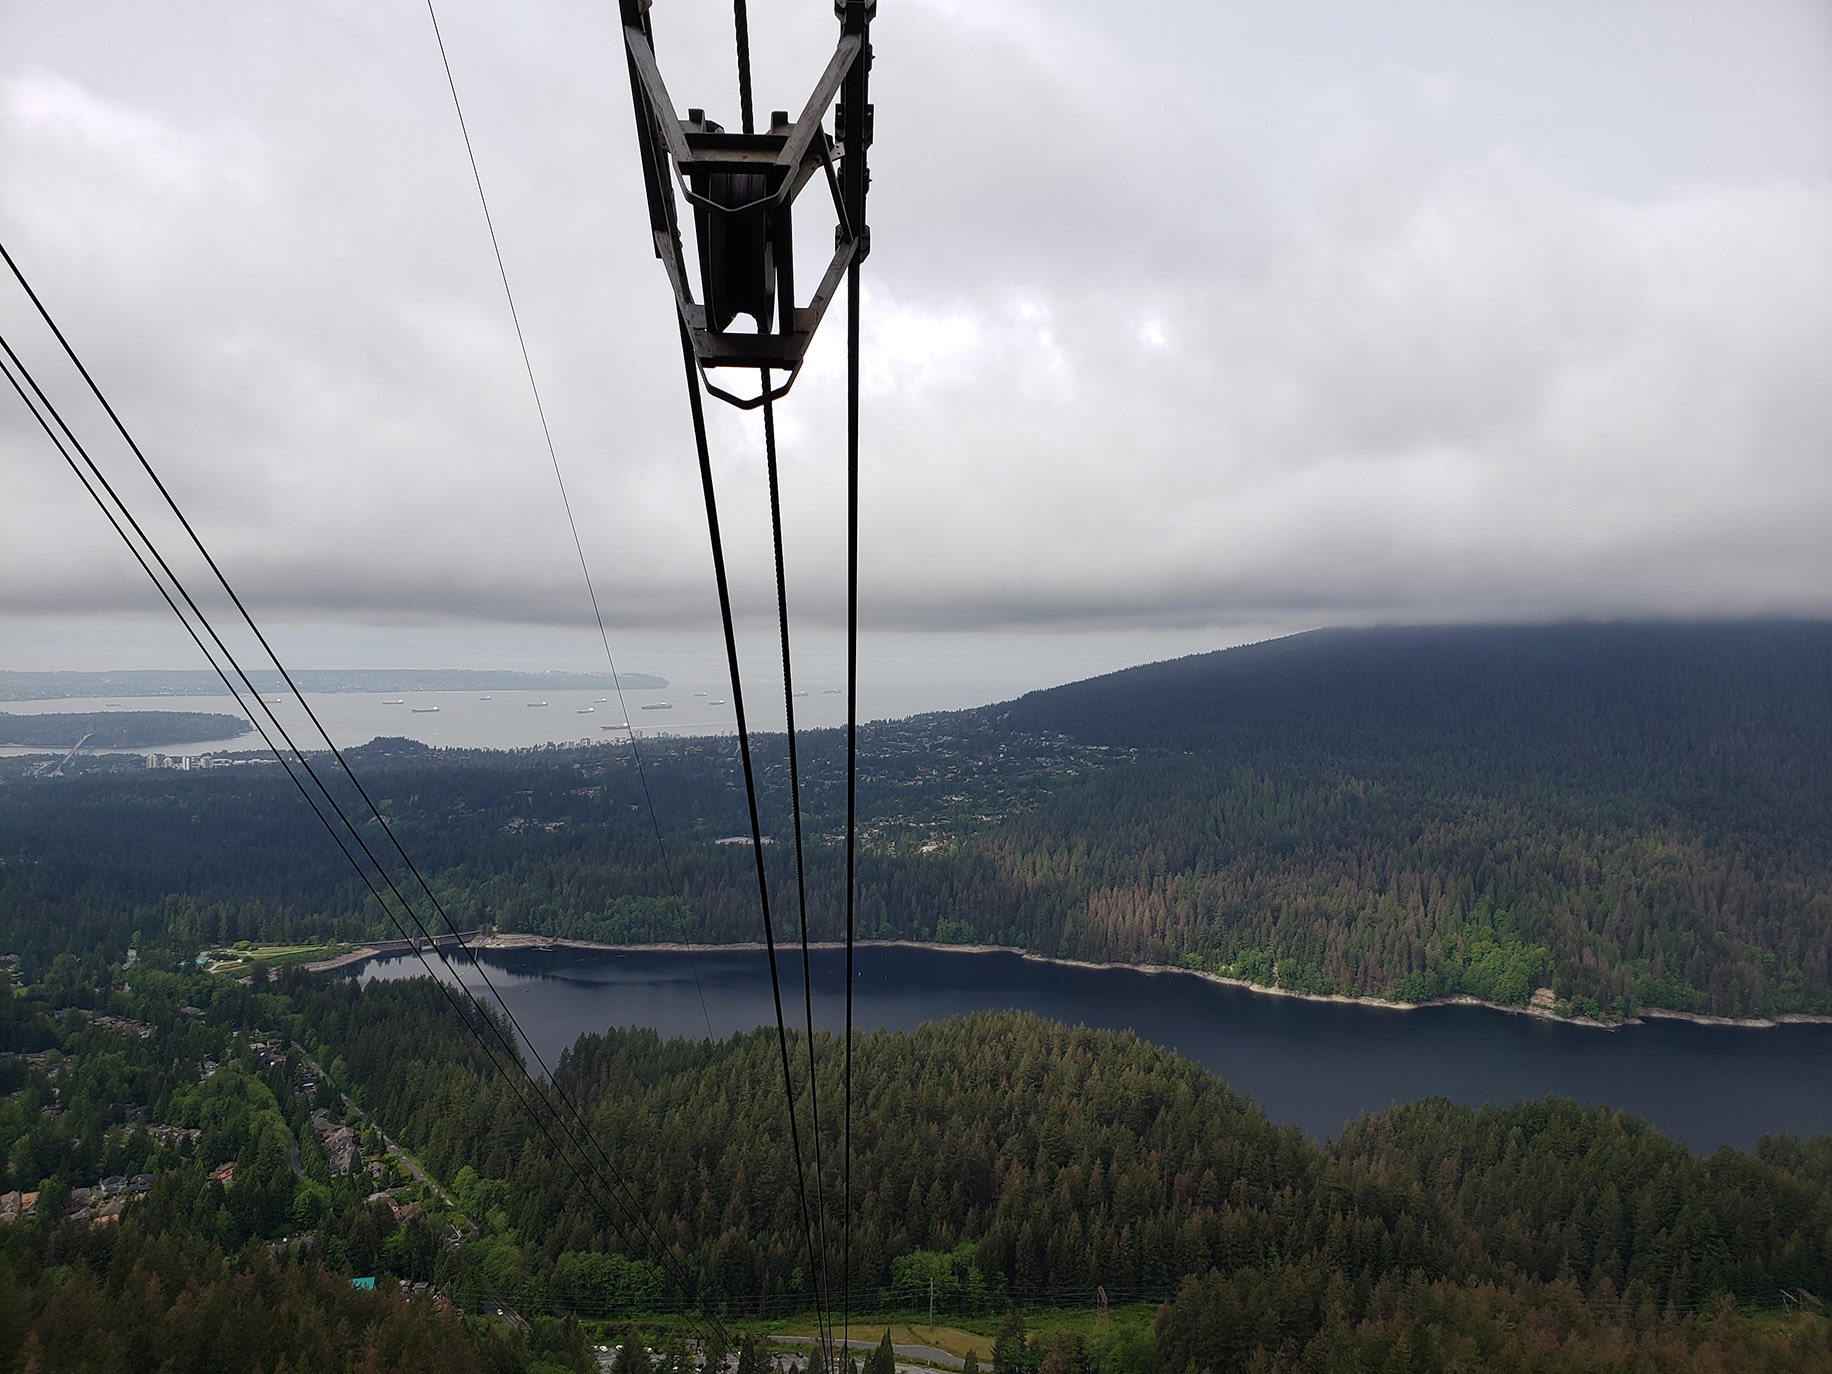 A view from the Grouse Mountain gondola showing the Capilano Lake dam, Stanley Park, and the Lions Gate Bridge.